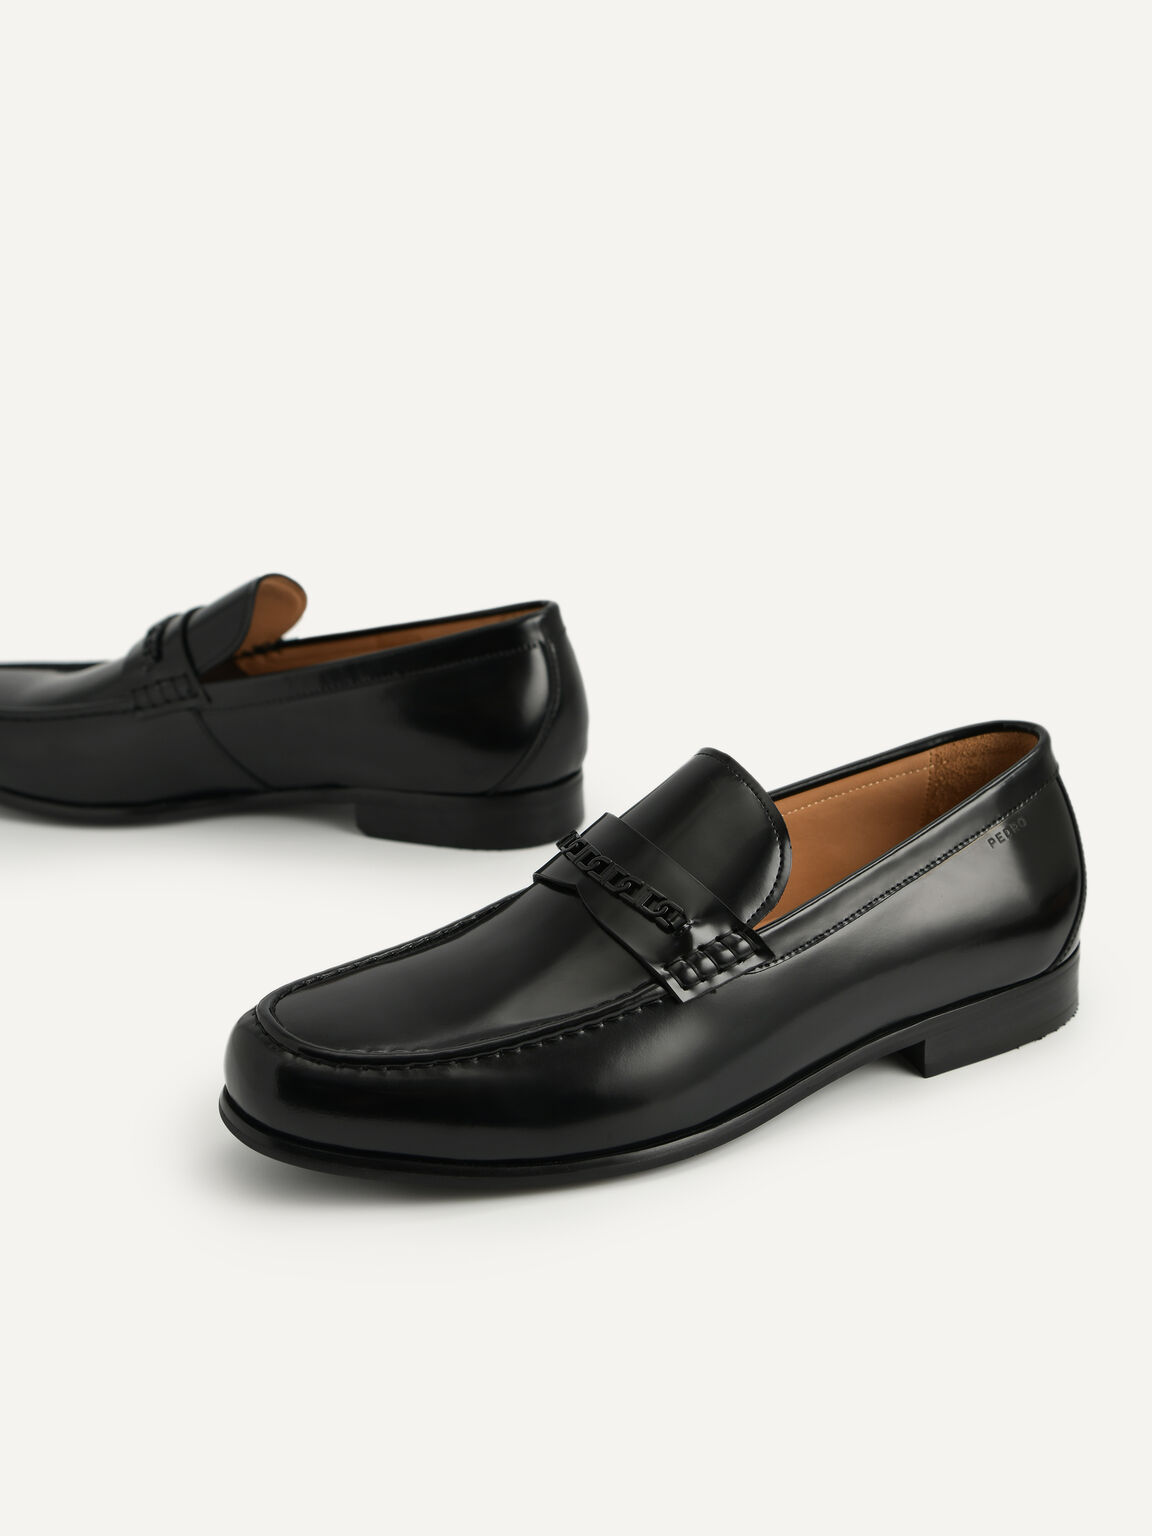 Icon Leather Penny Loafers, Black, hi-res